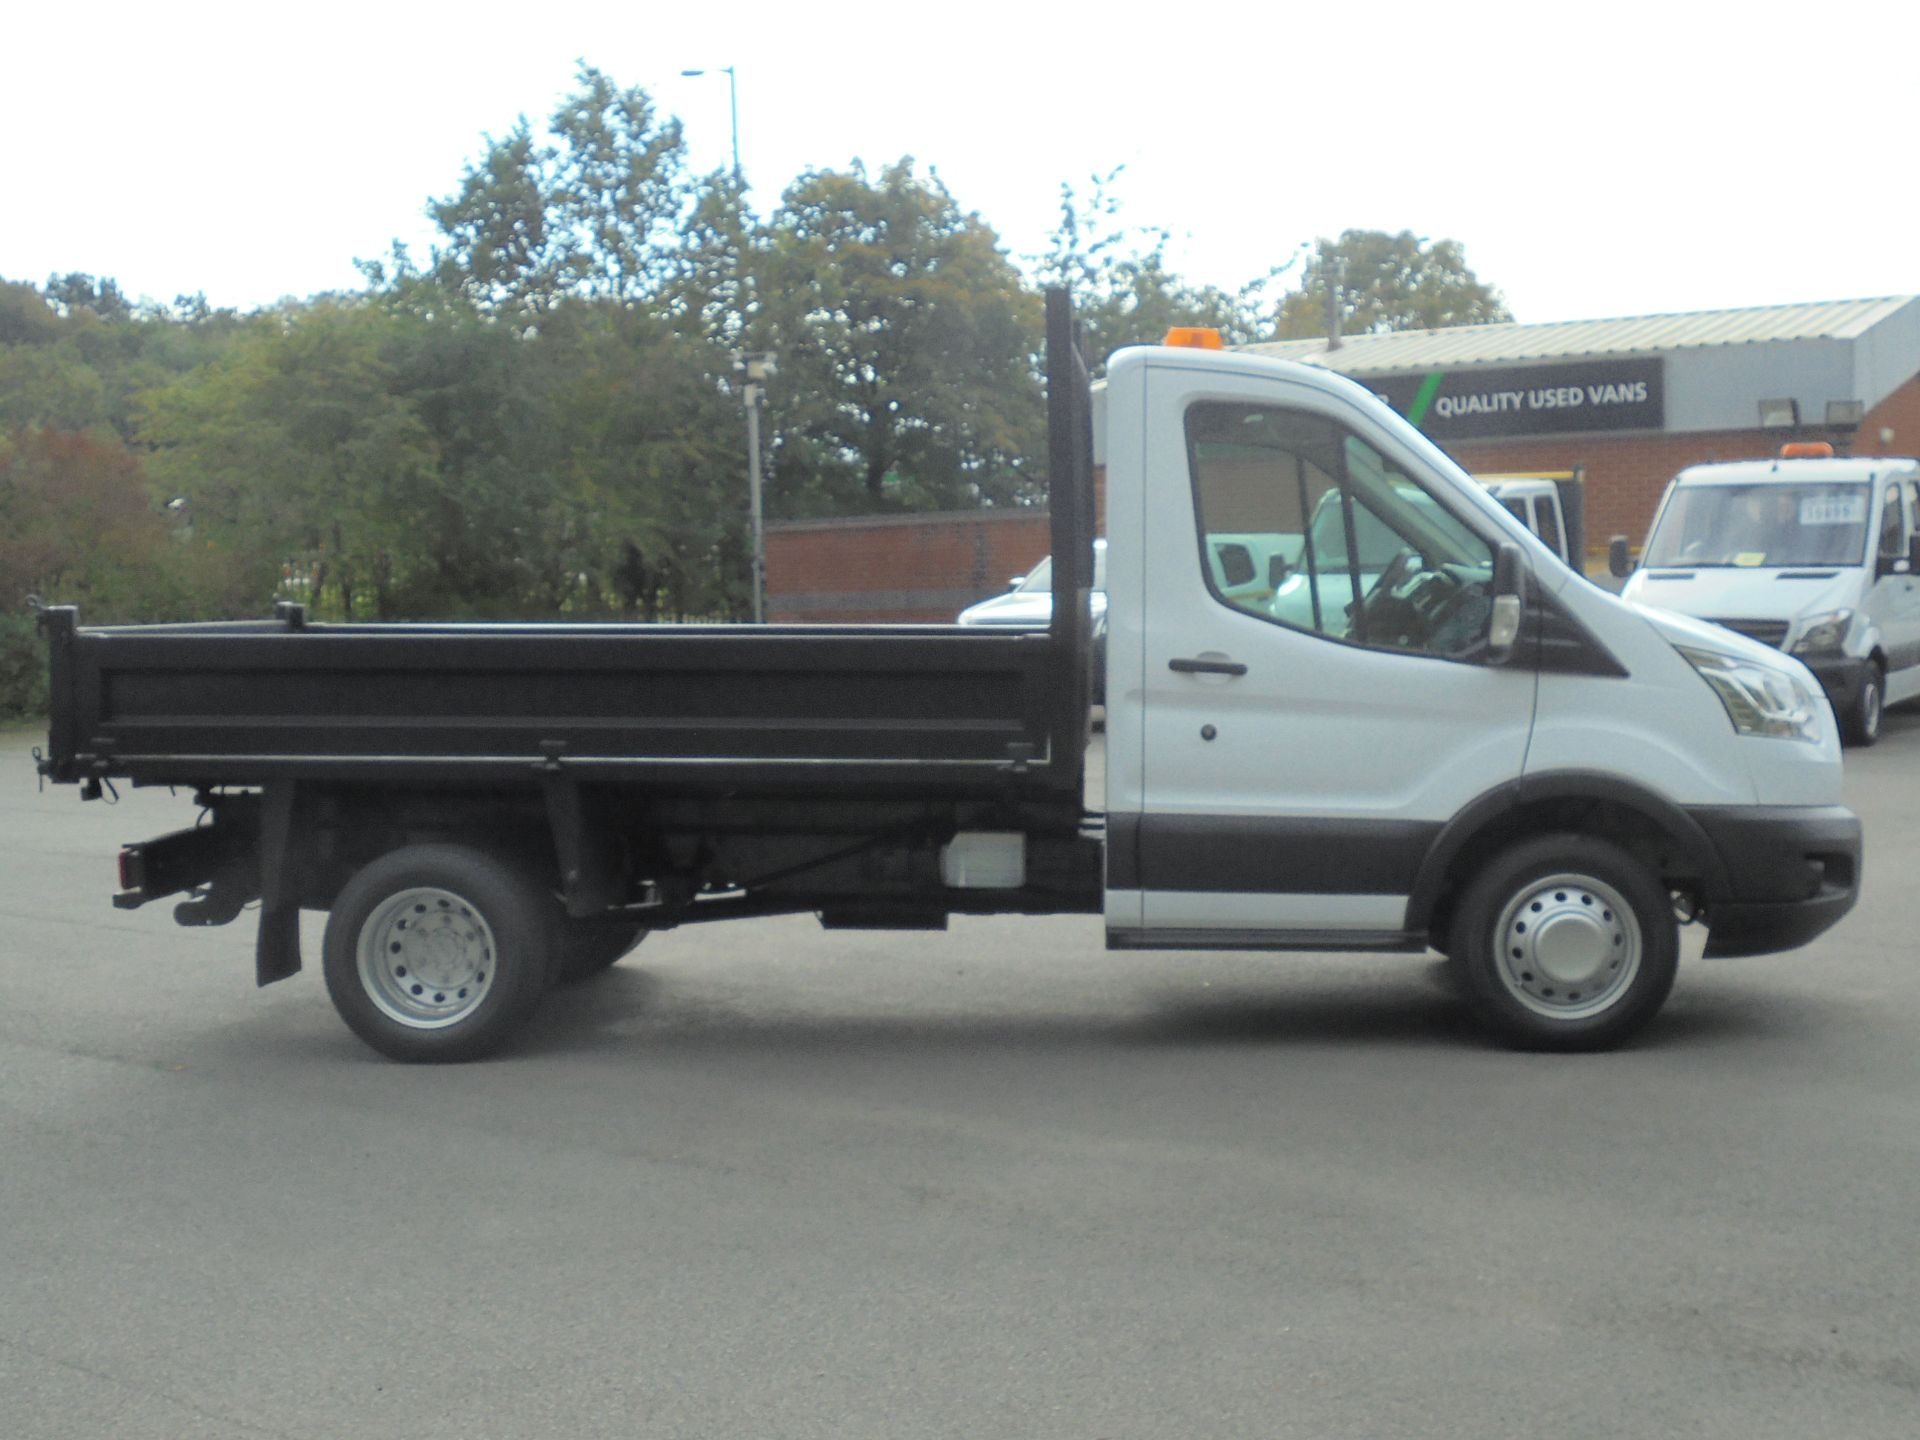 2015 Ford Transit 2.2 Tdci 125Ps Chassis Cab Tipper (FP65DJZ) Image 9